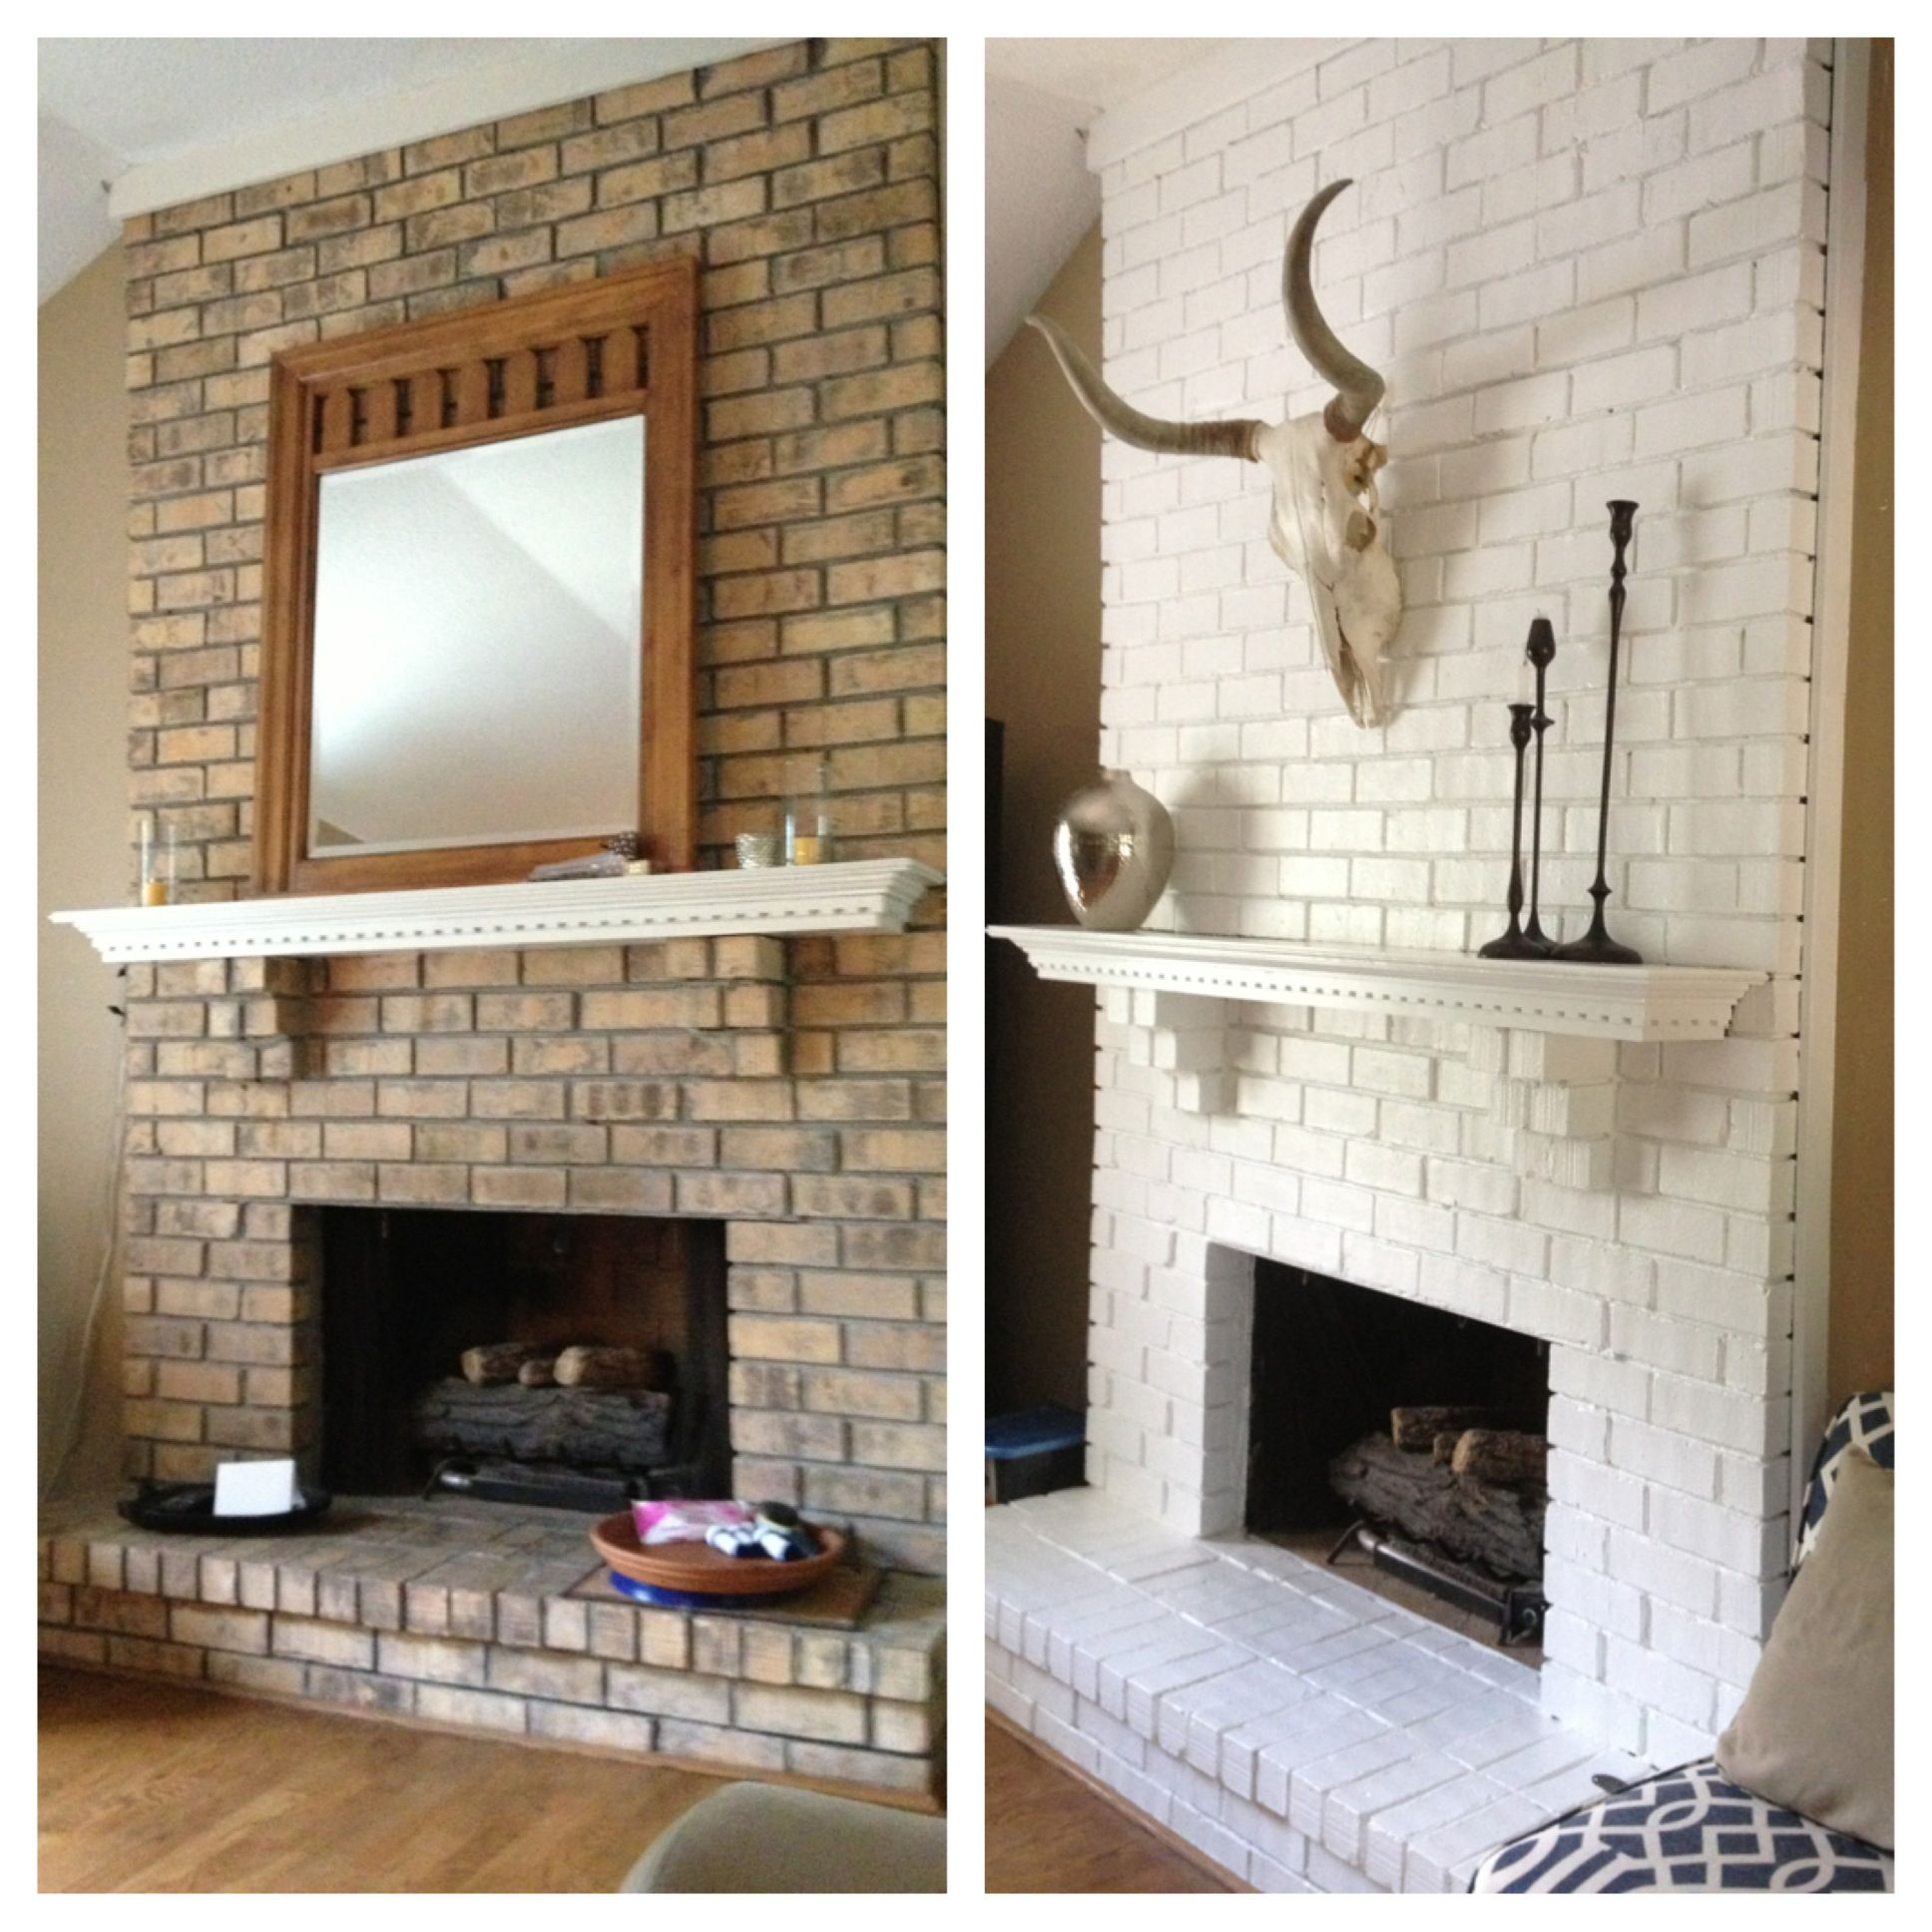 Brick fireplace painted white                                                                                                                                                                                 More